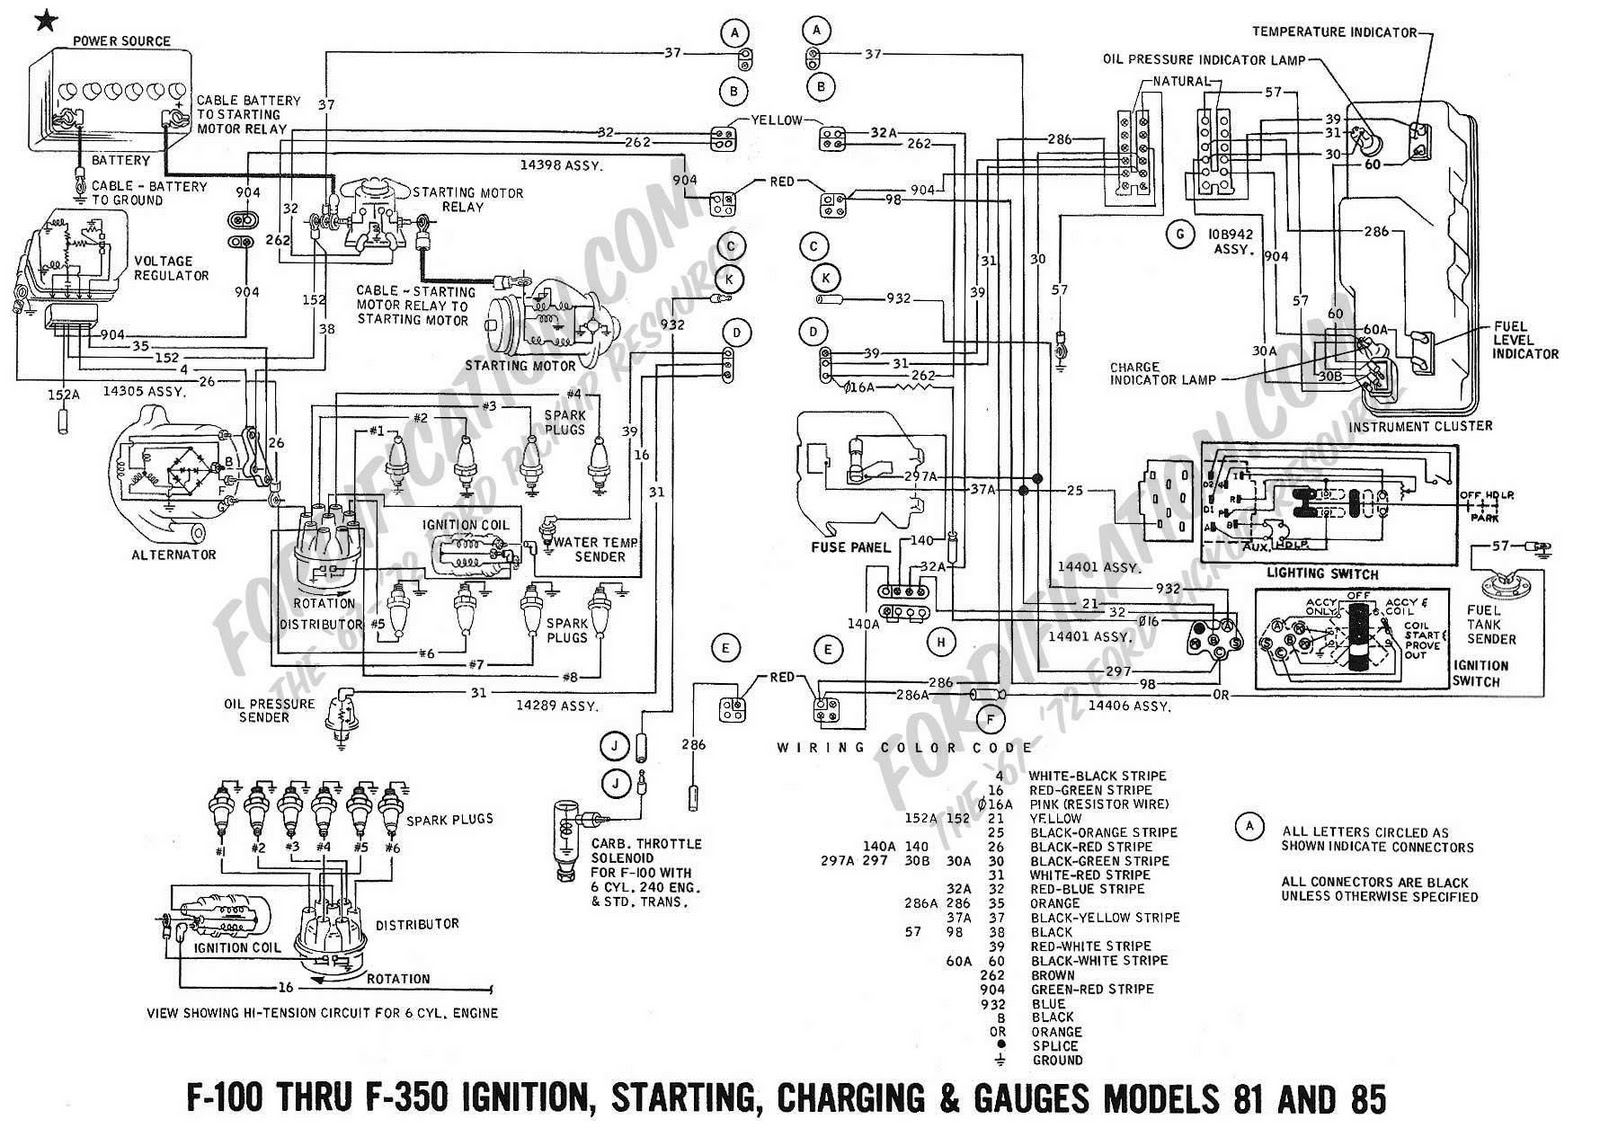 1968 Ford F 250 Engine Wiring Diagram Free For You Chevy Ignition Wire Blogs Rh 16 11 5 Restaurant Freinsheimer Hof